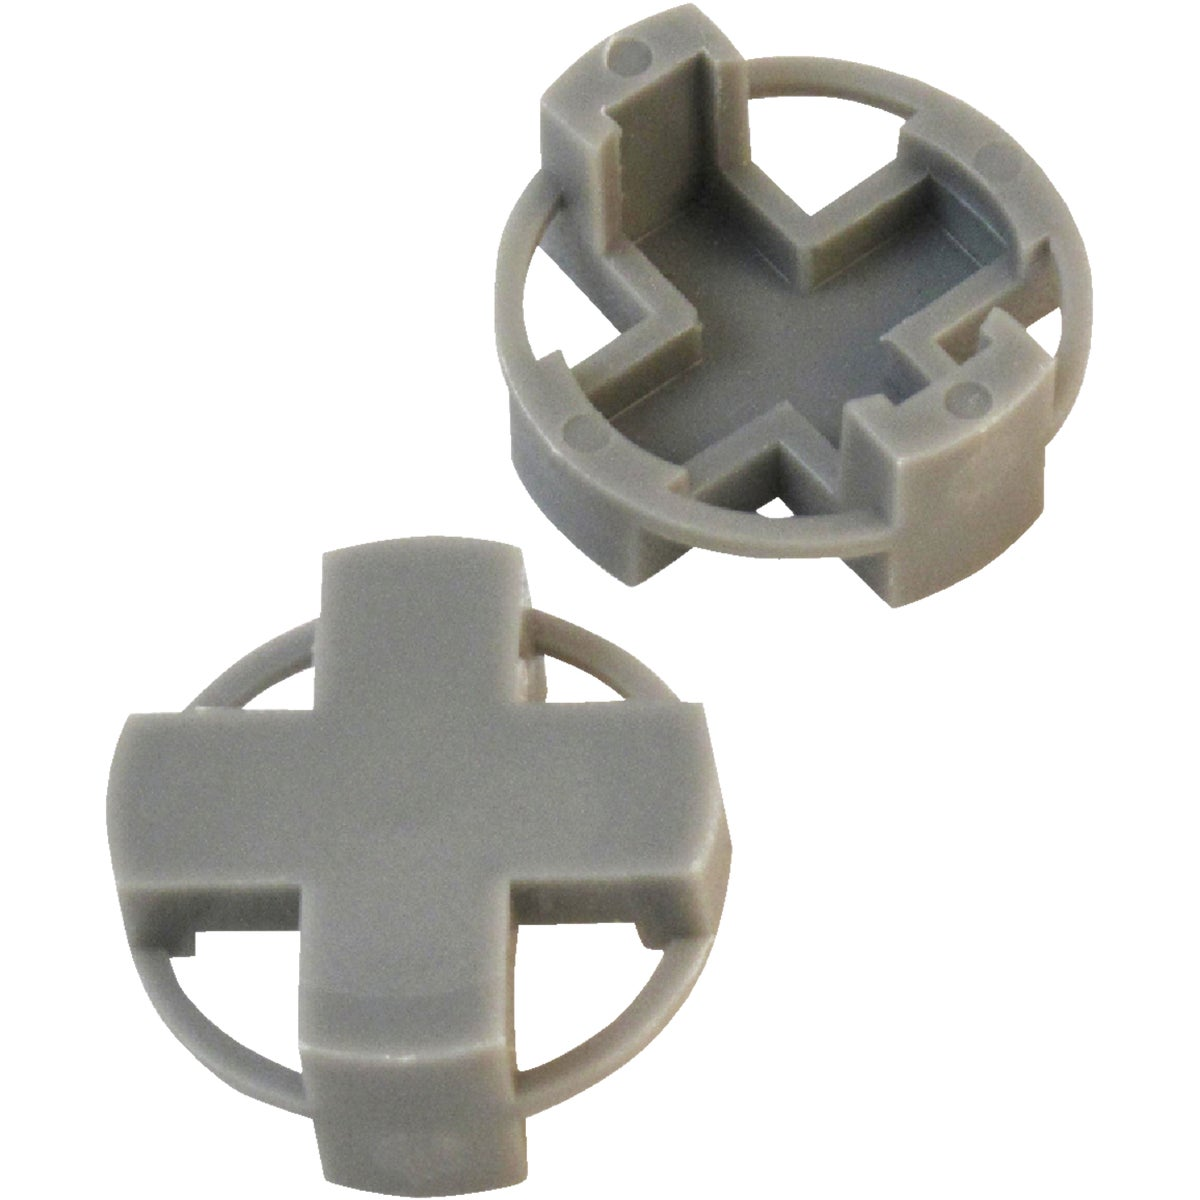 "3/8""GRA TAVY TILE SPACER"